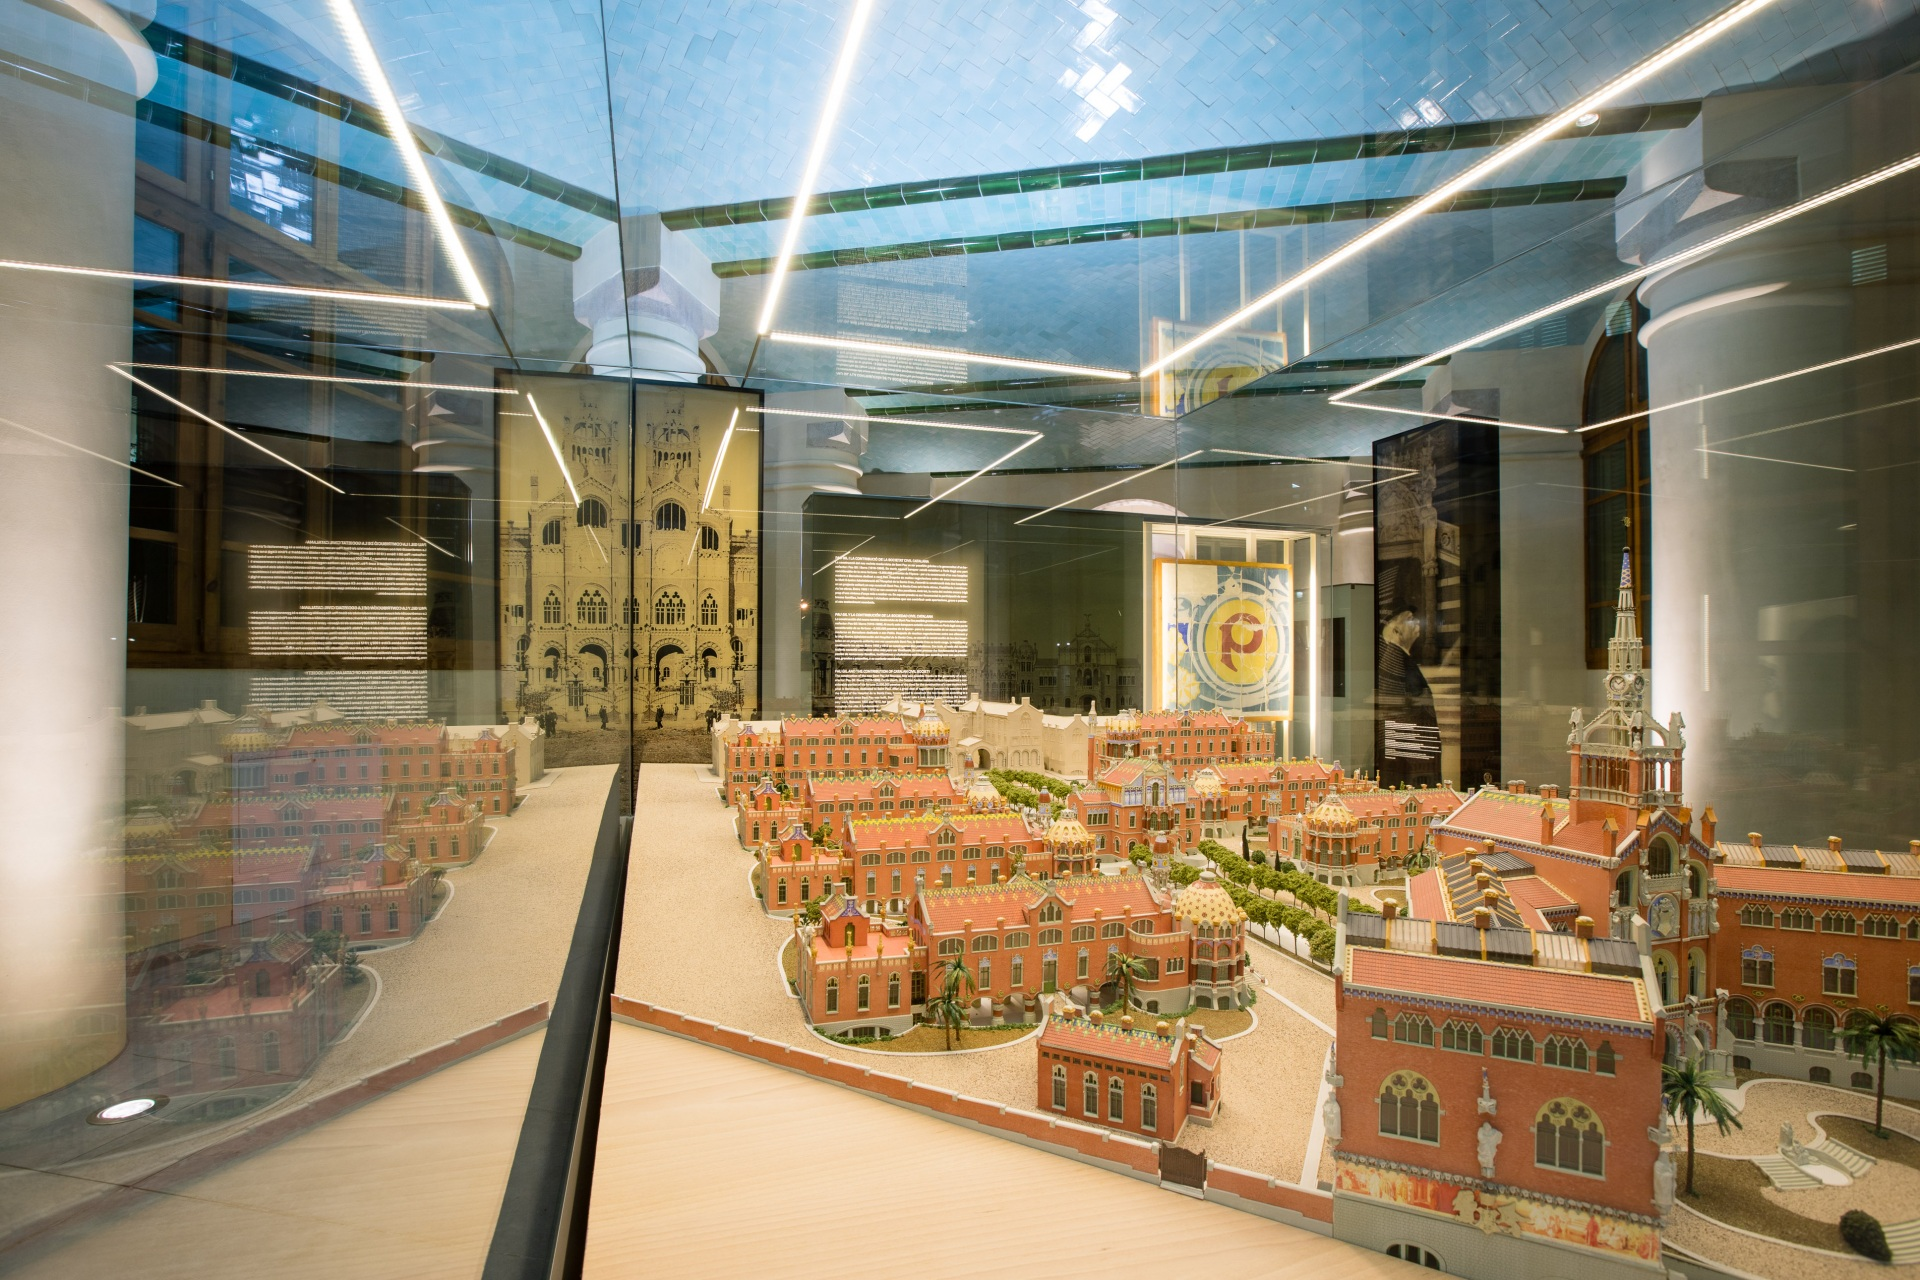 Hospital of the Santa Creu i Sant Pau. Picture of the showcase interior showing the modernist building model. The reflection duplicates the image.